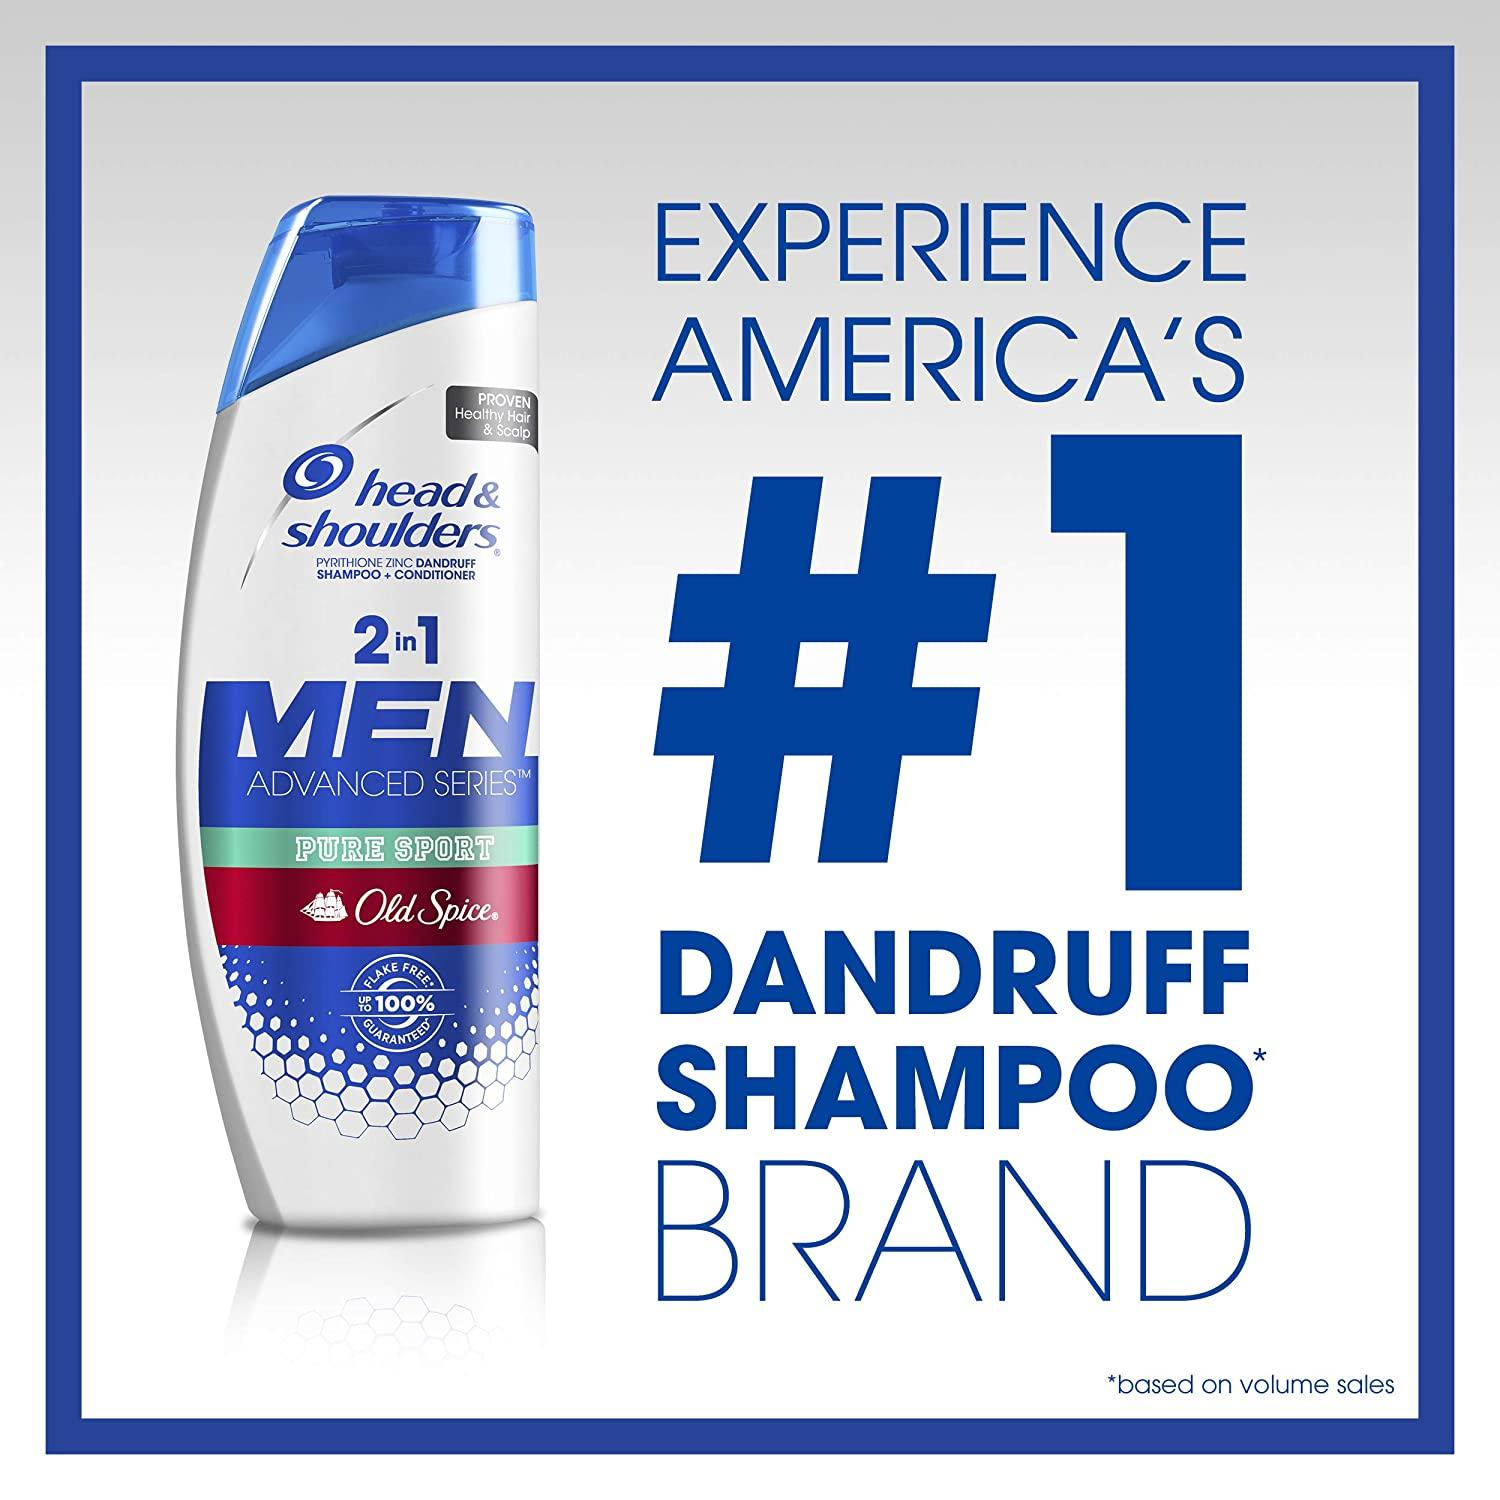 Head & Shoulders Old Spice Pure Sport Dandruff 2 in 1 Shampoo and Conditioner